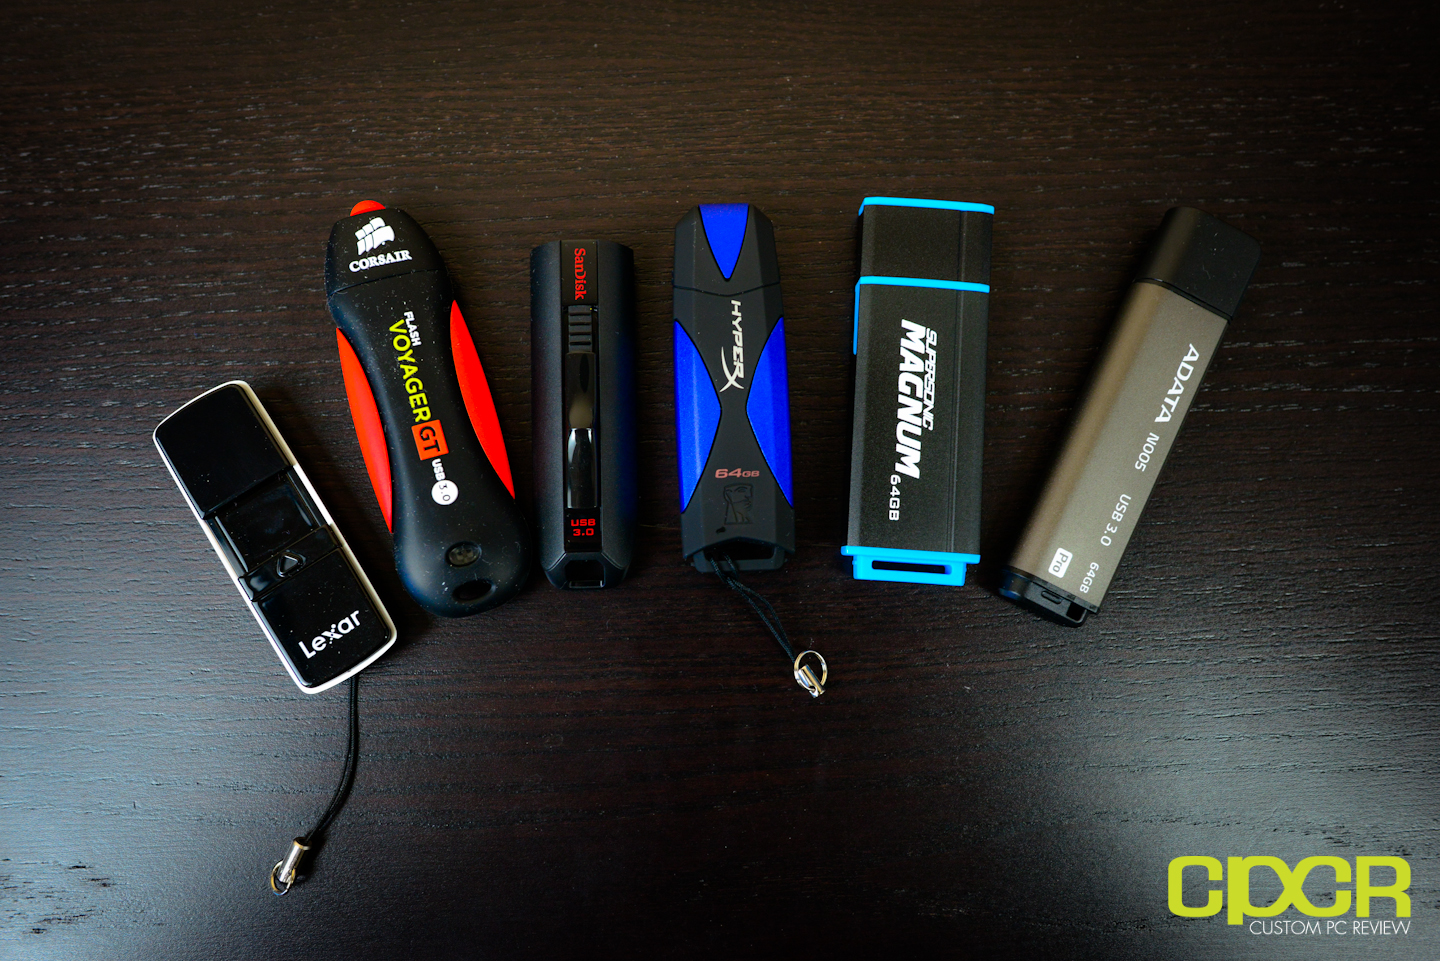 Usb 3 flash drive roundup custom pc review 19